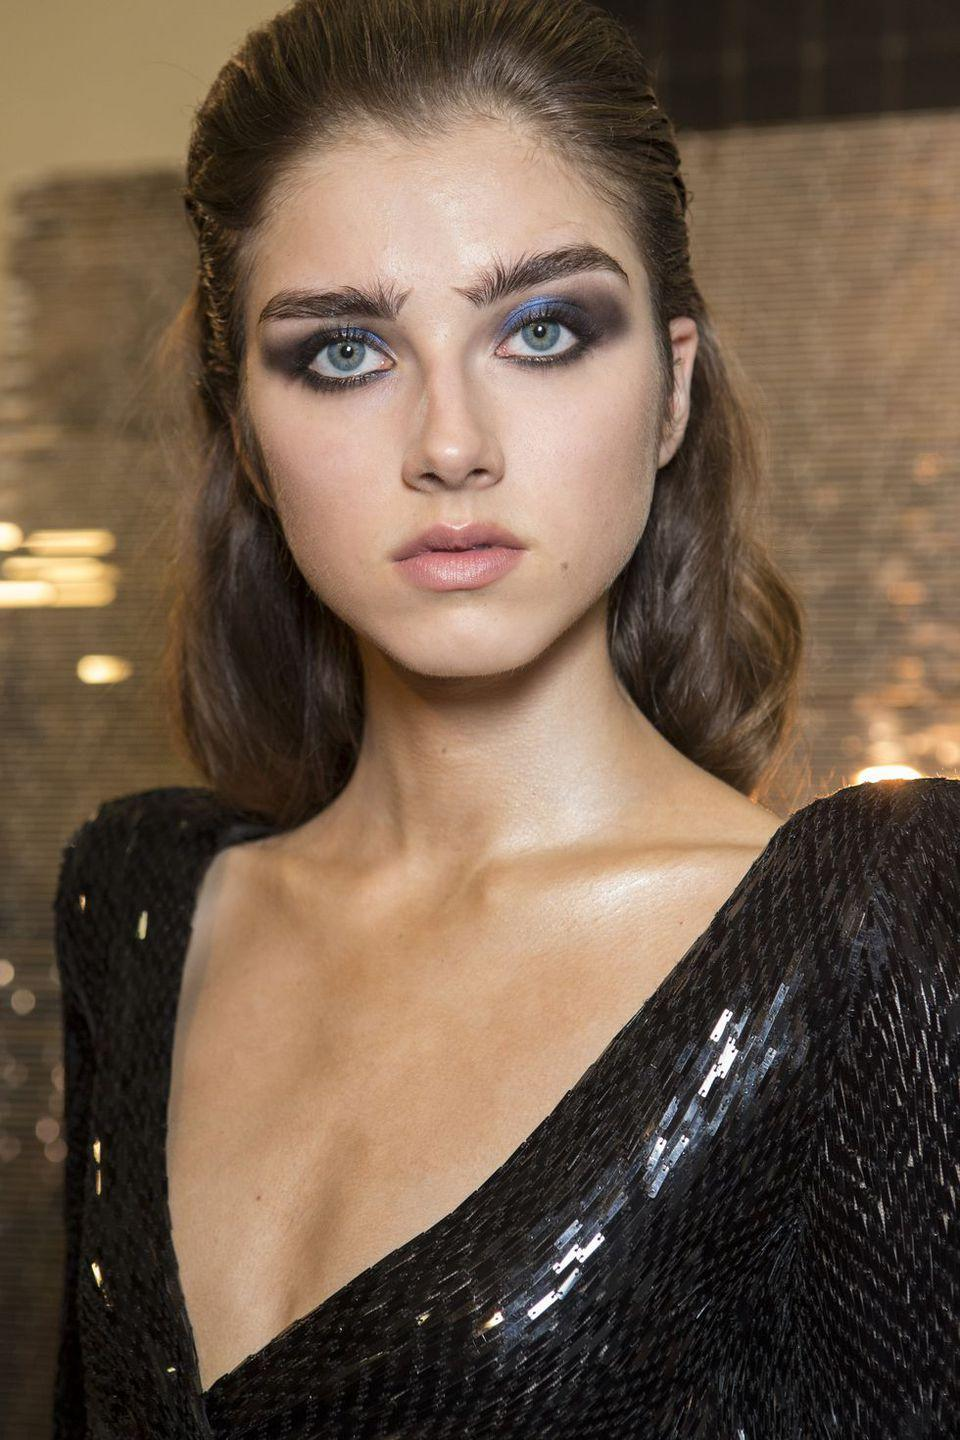 <p>A smoky eye looks fresh when a dash of metallic cobalt pigment is traces from the inner corner to the center of the lid.</p>